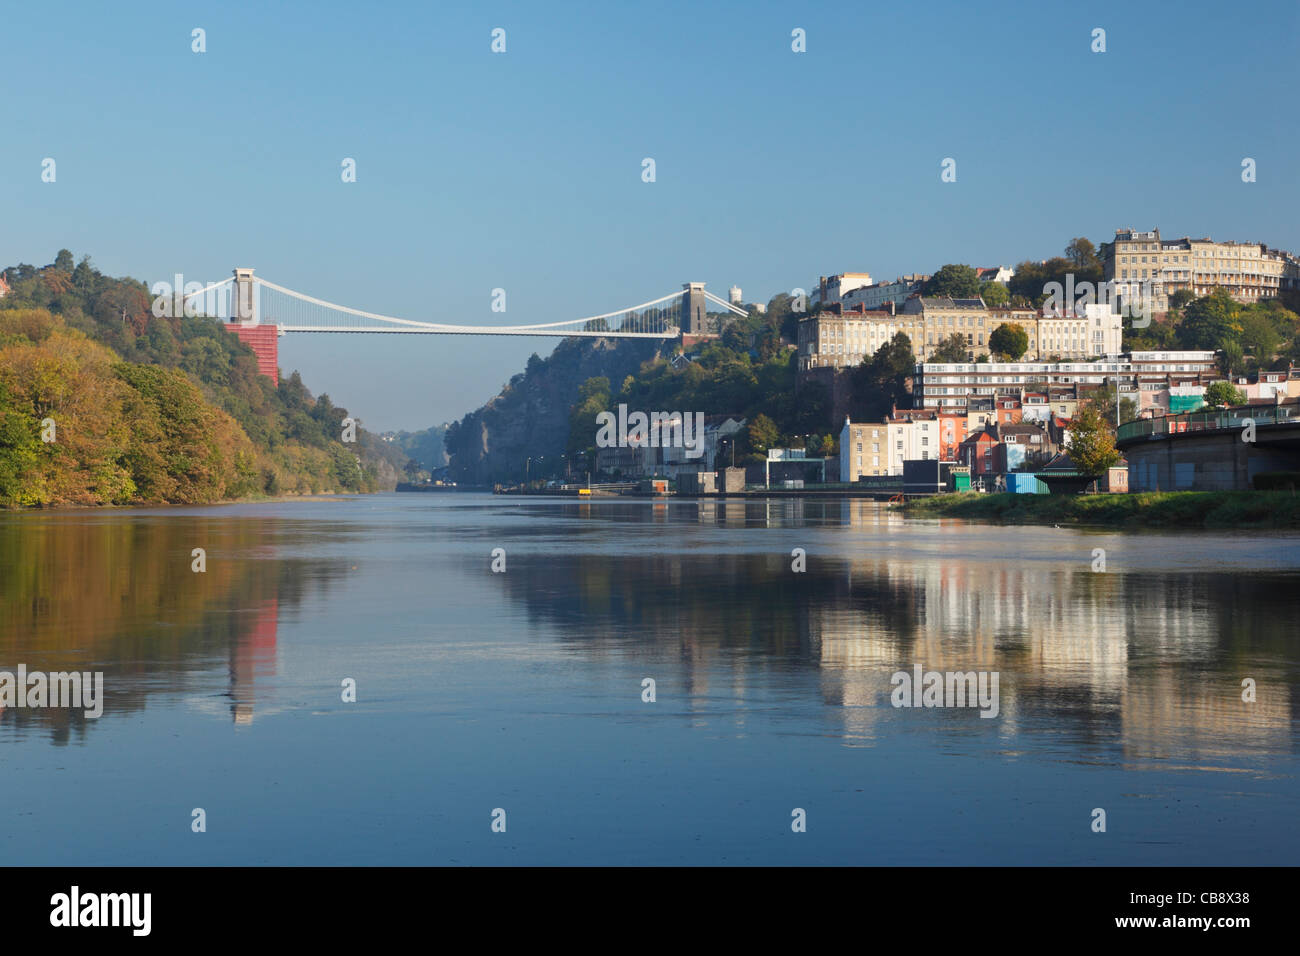 The River Avon and the Clifton Suspension Bridge during High Spring Tide. Bristol. England. UK. - Stock Image